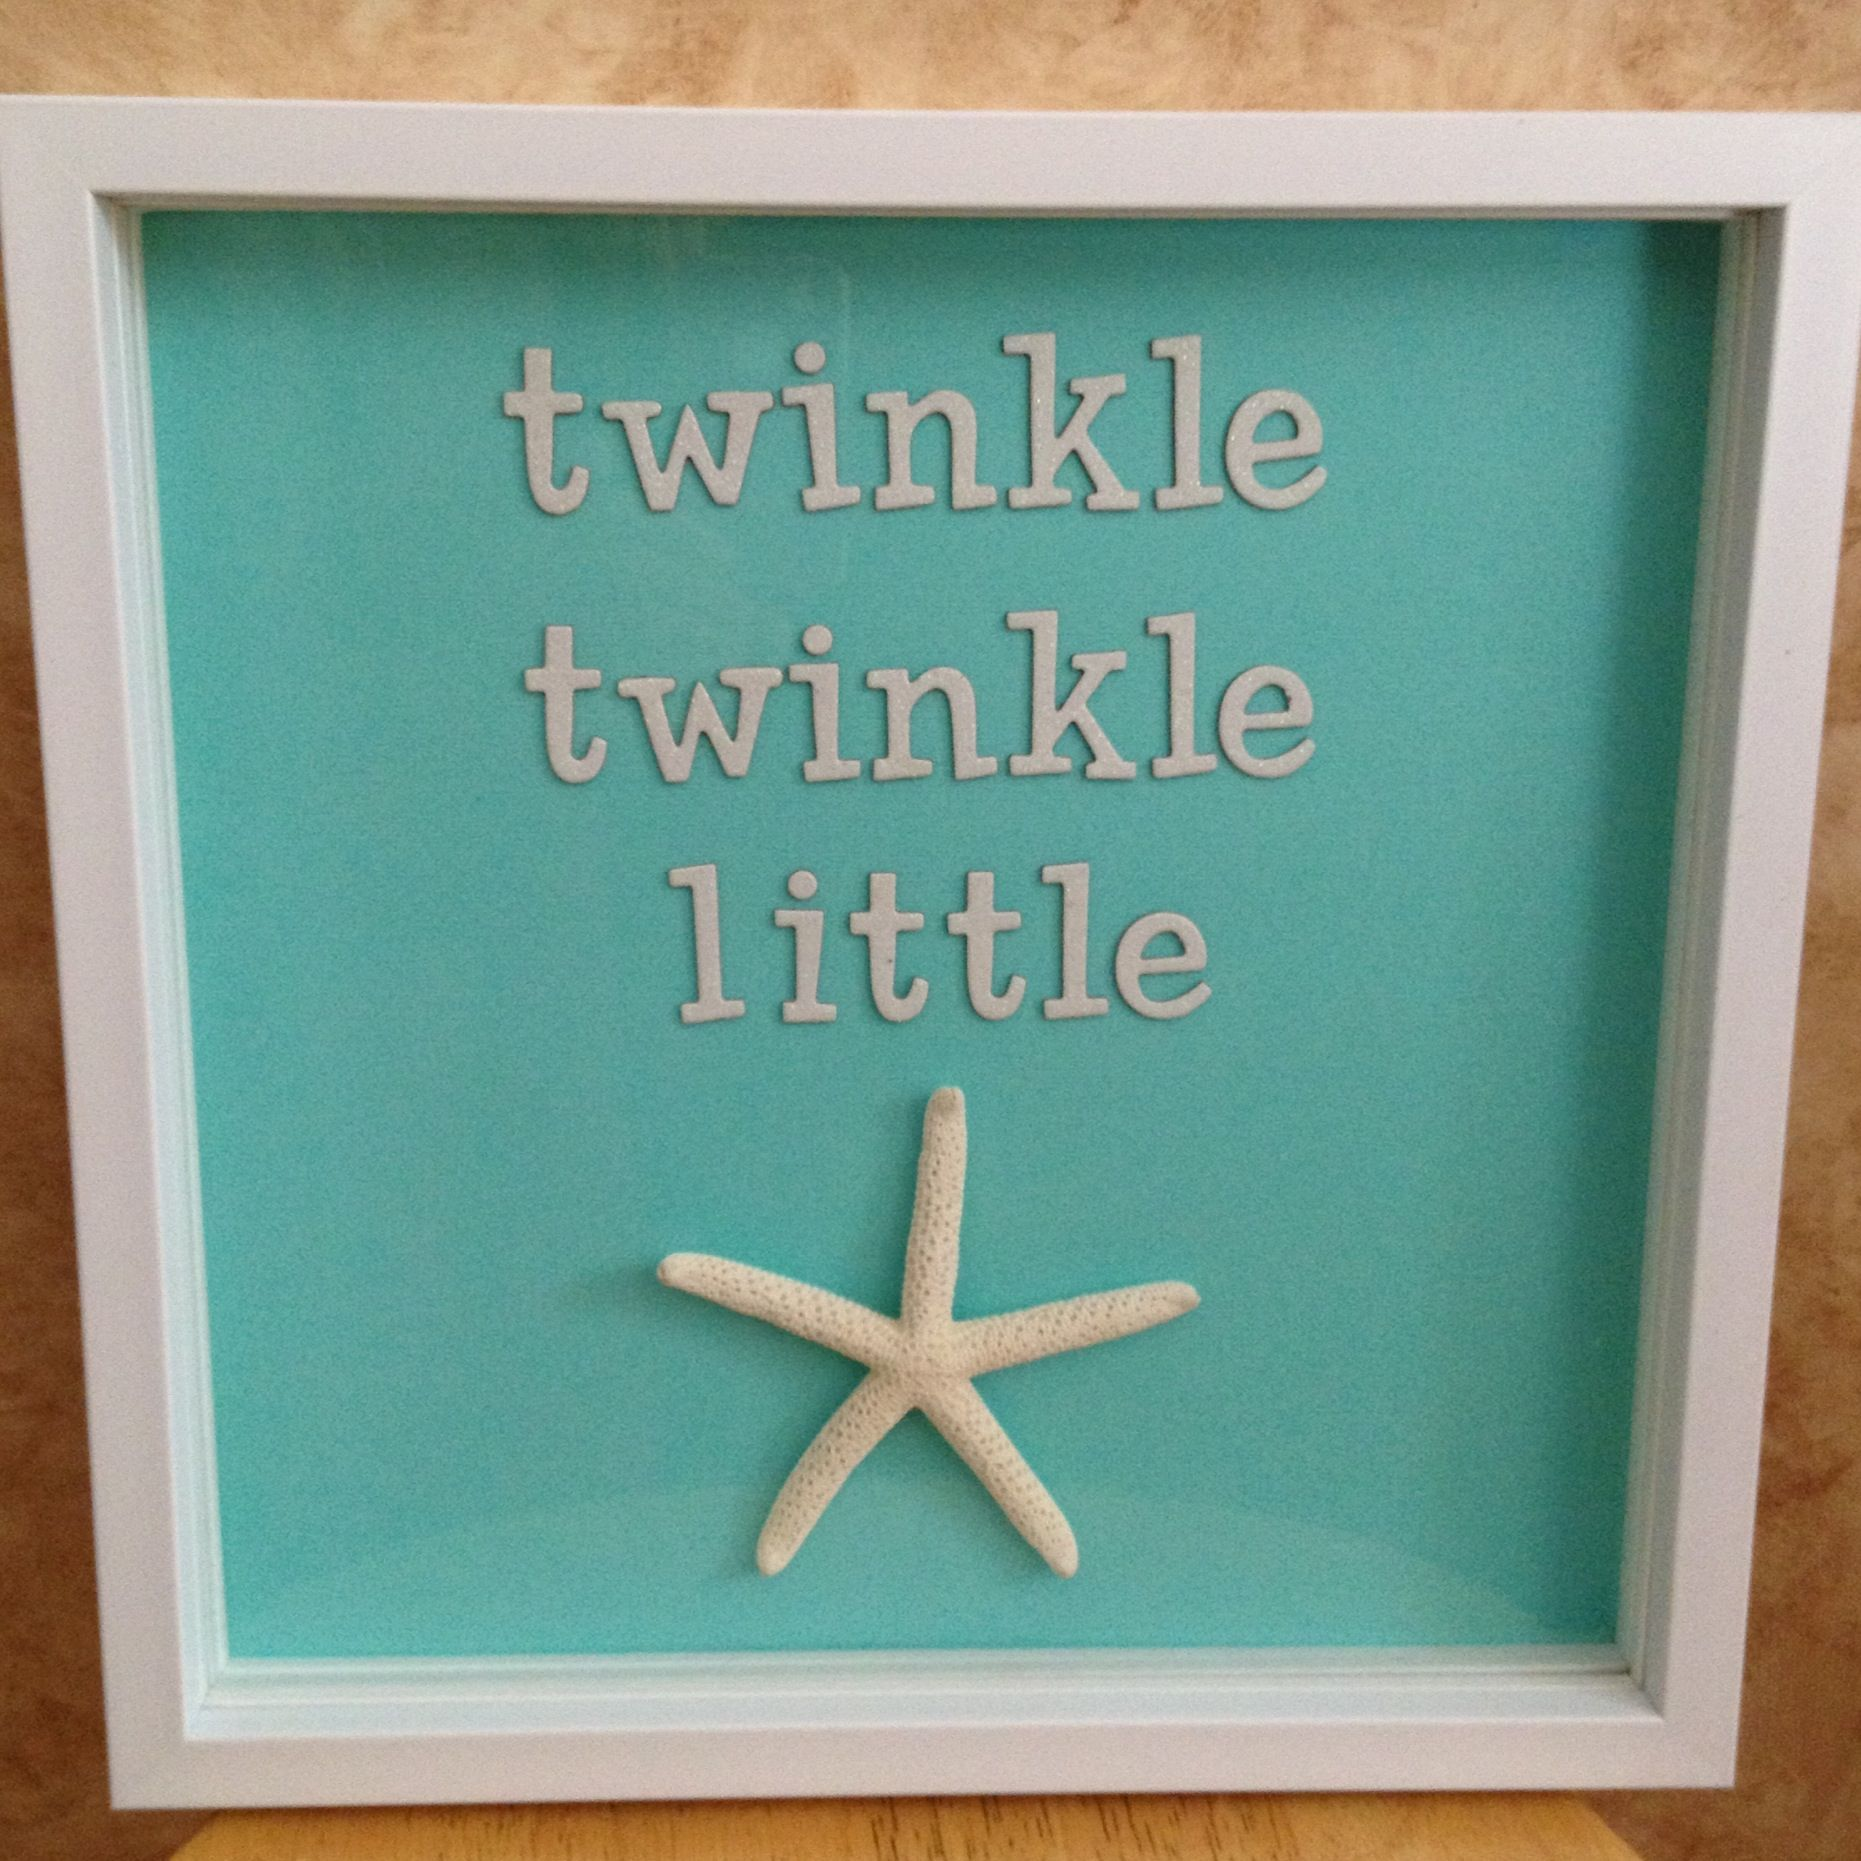 Beach Theme Home Decor Shadow Box Beach Gift: Twinkle Twinkle Little (starfish) Shadow Box Sign, Beach